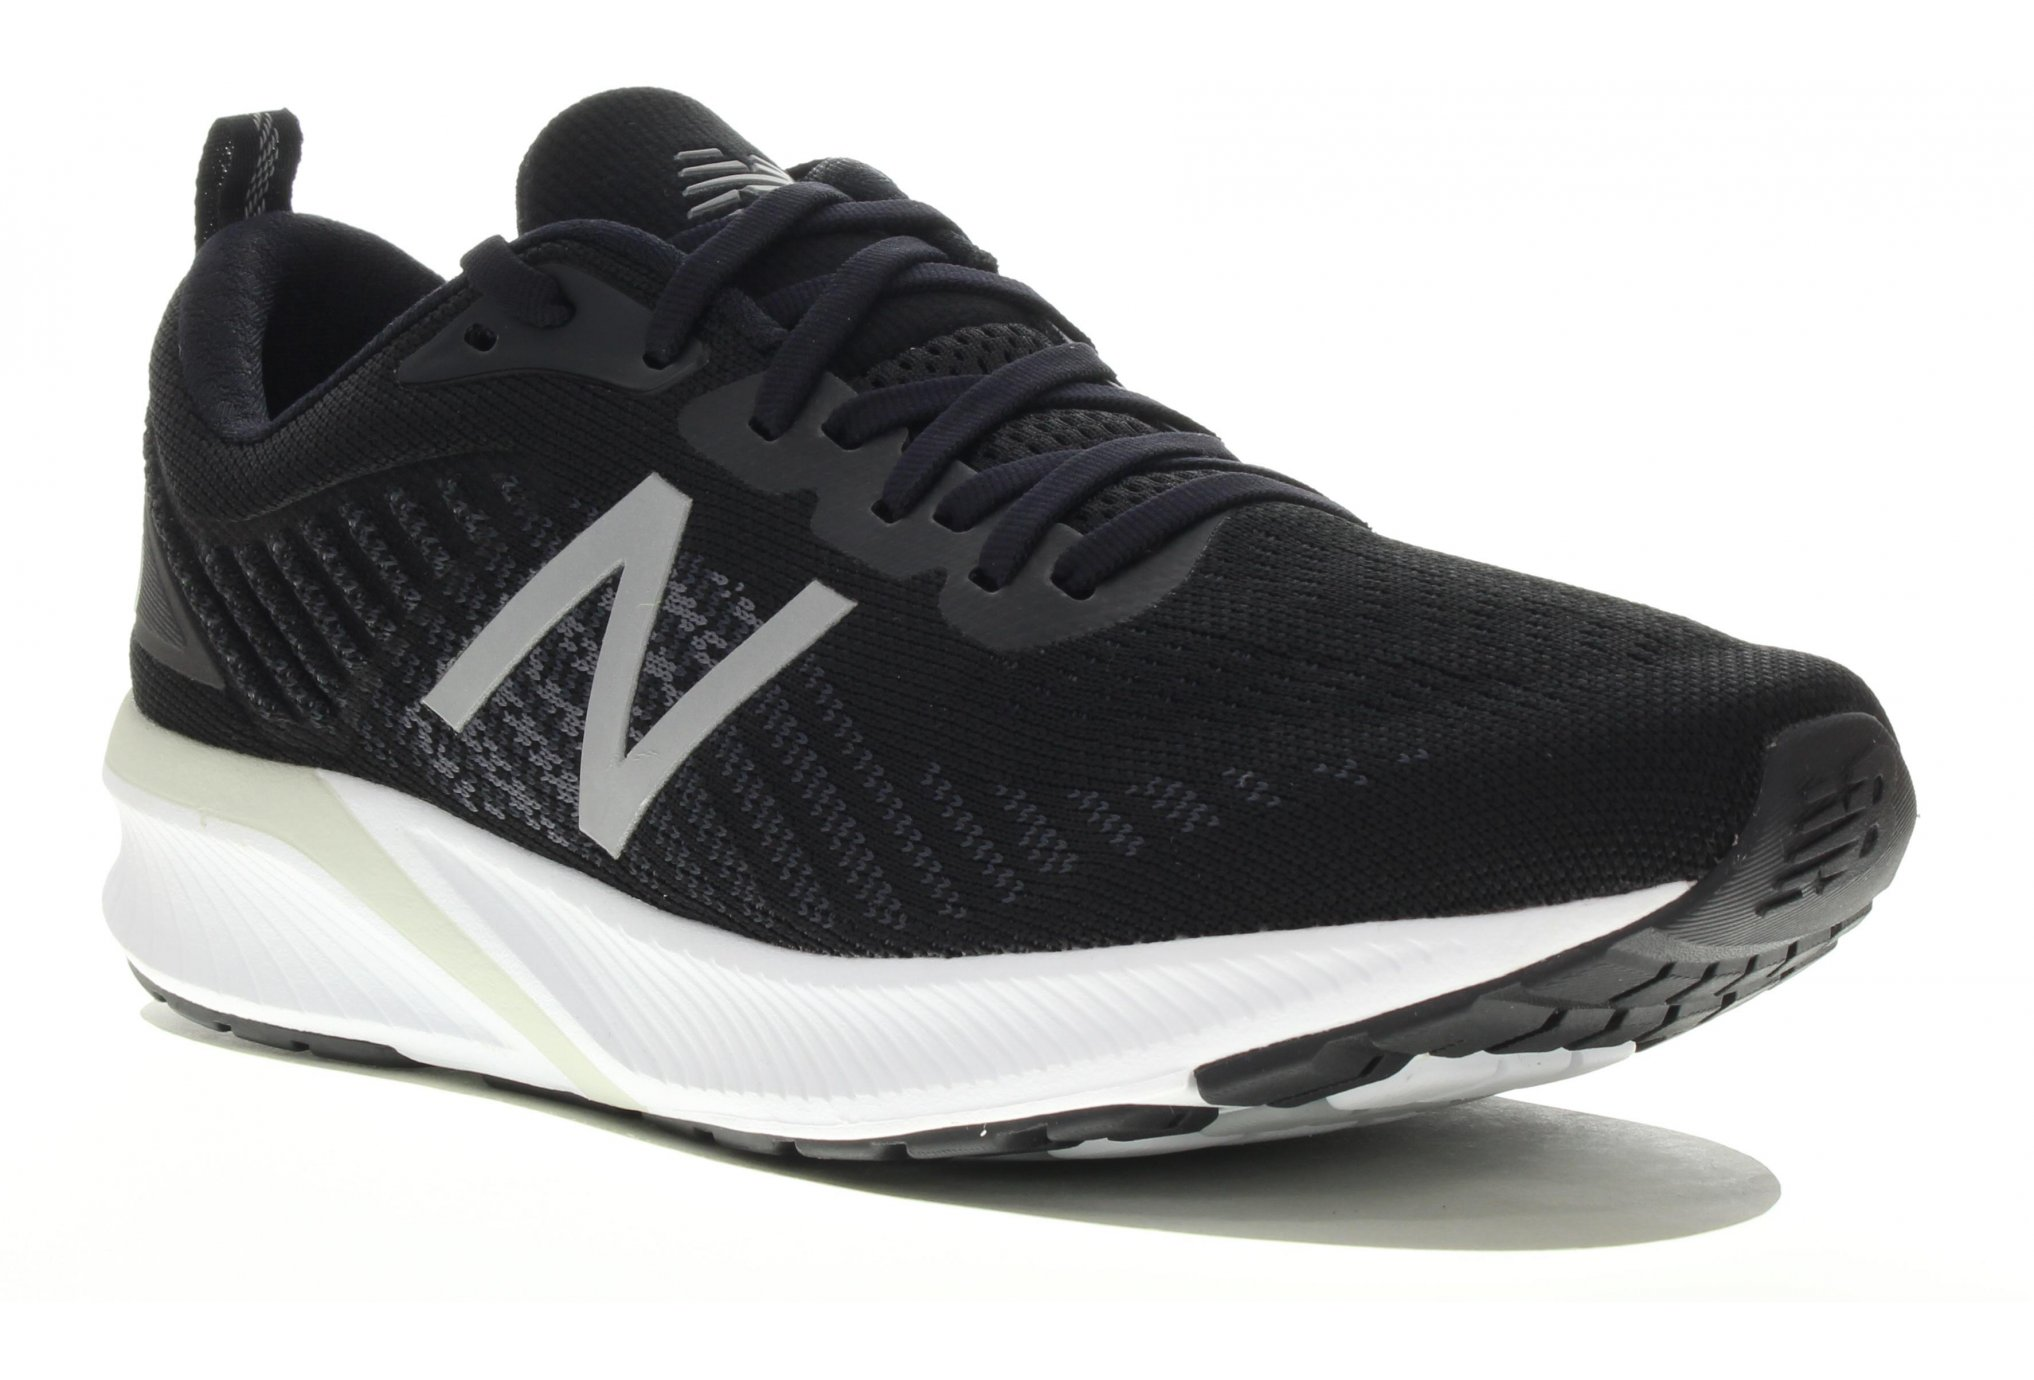 New Balance 870 V5 Chaussures homme